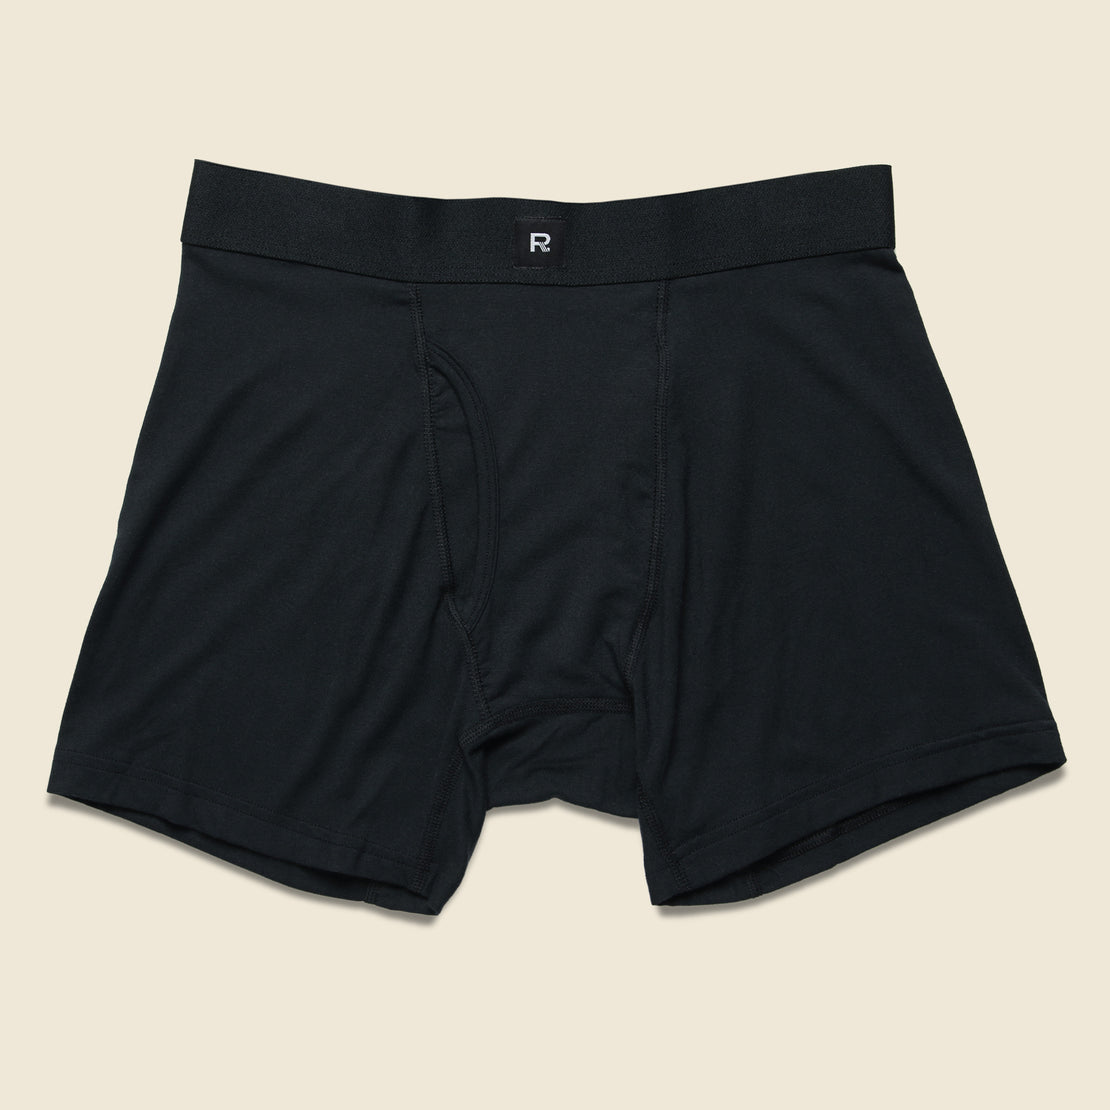 Richer Poorer Lewis Boxer Brief - Black